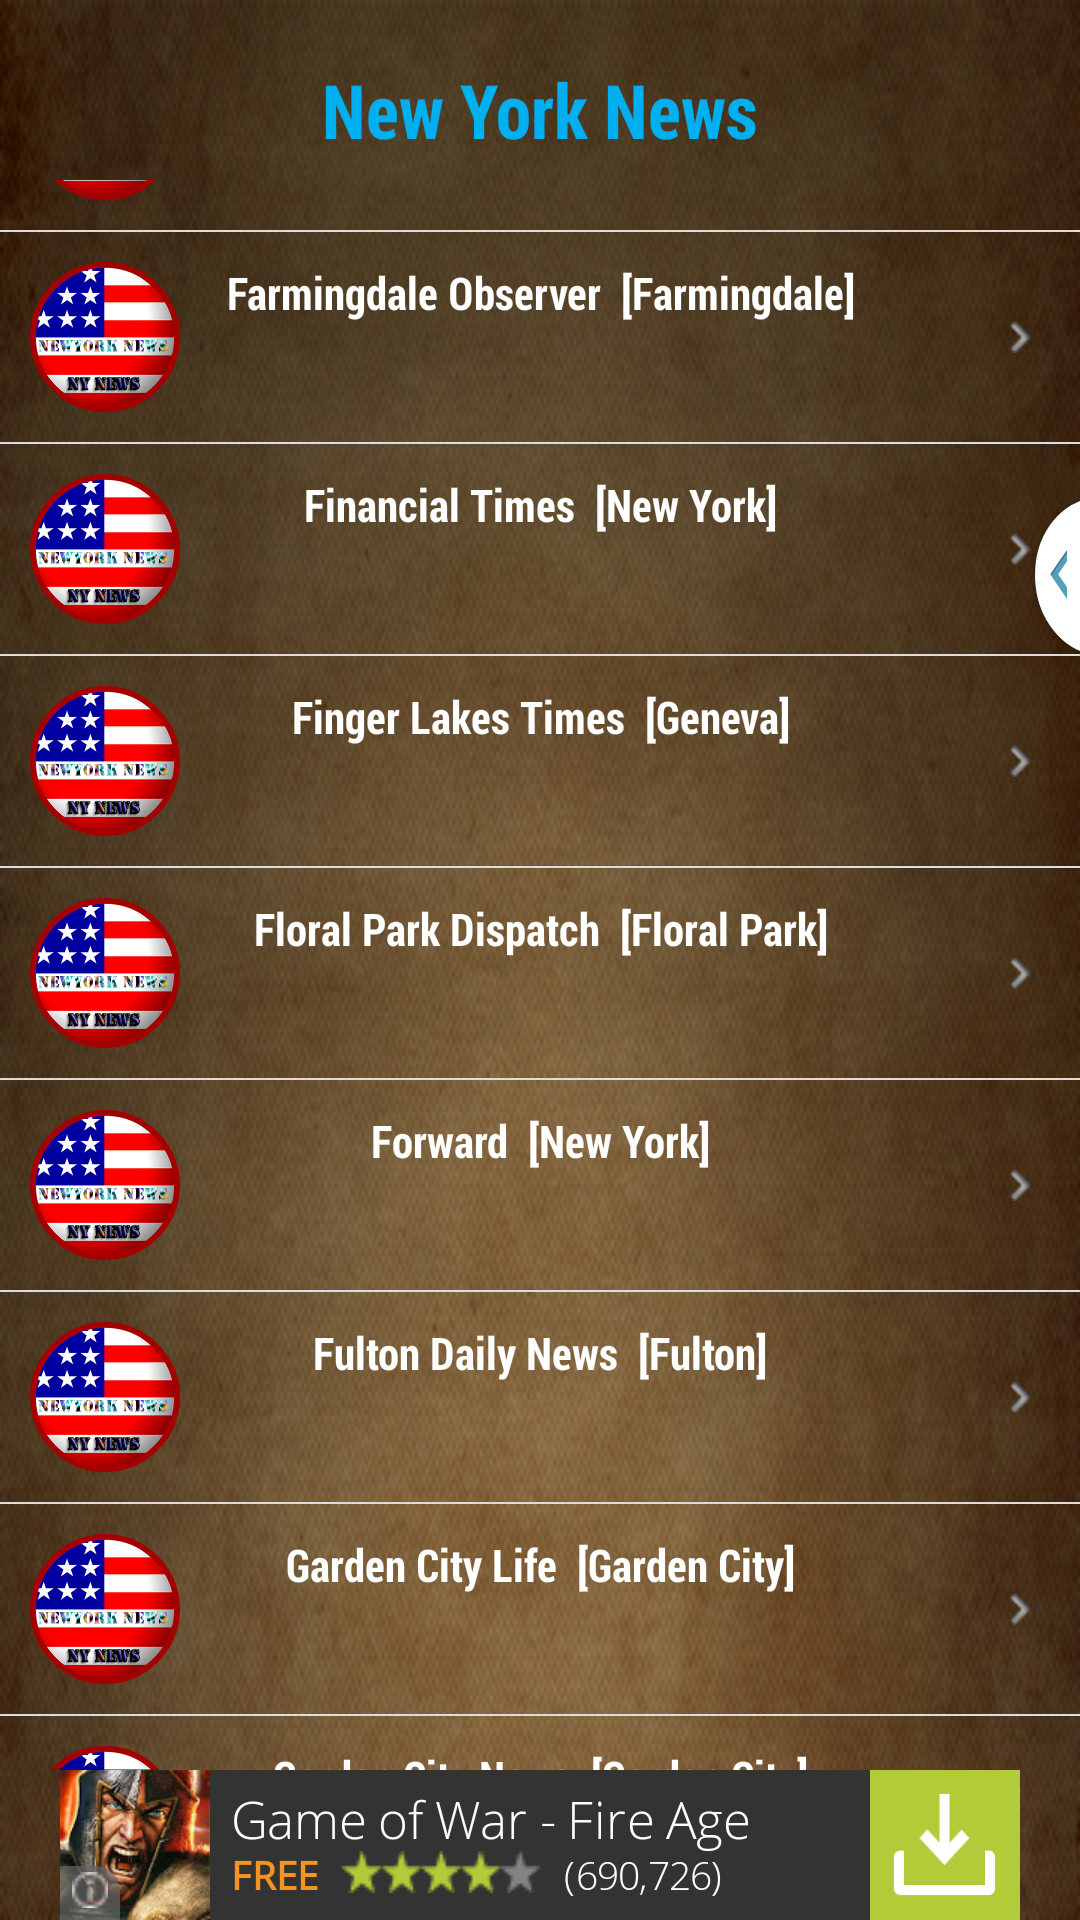 Amazon.com: New York- NY-State & Local News: Appstore for Android